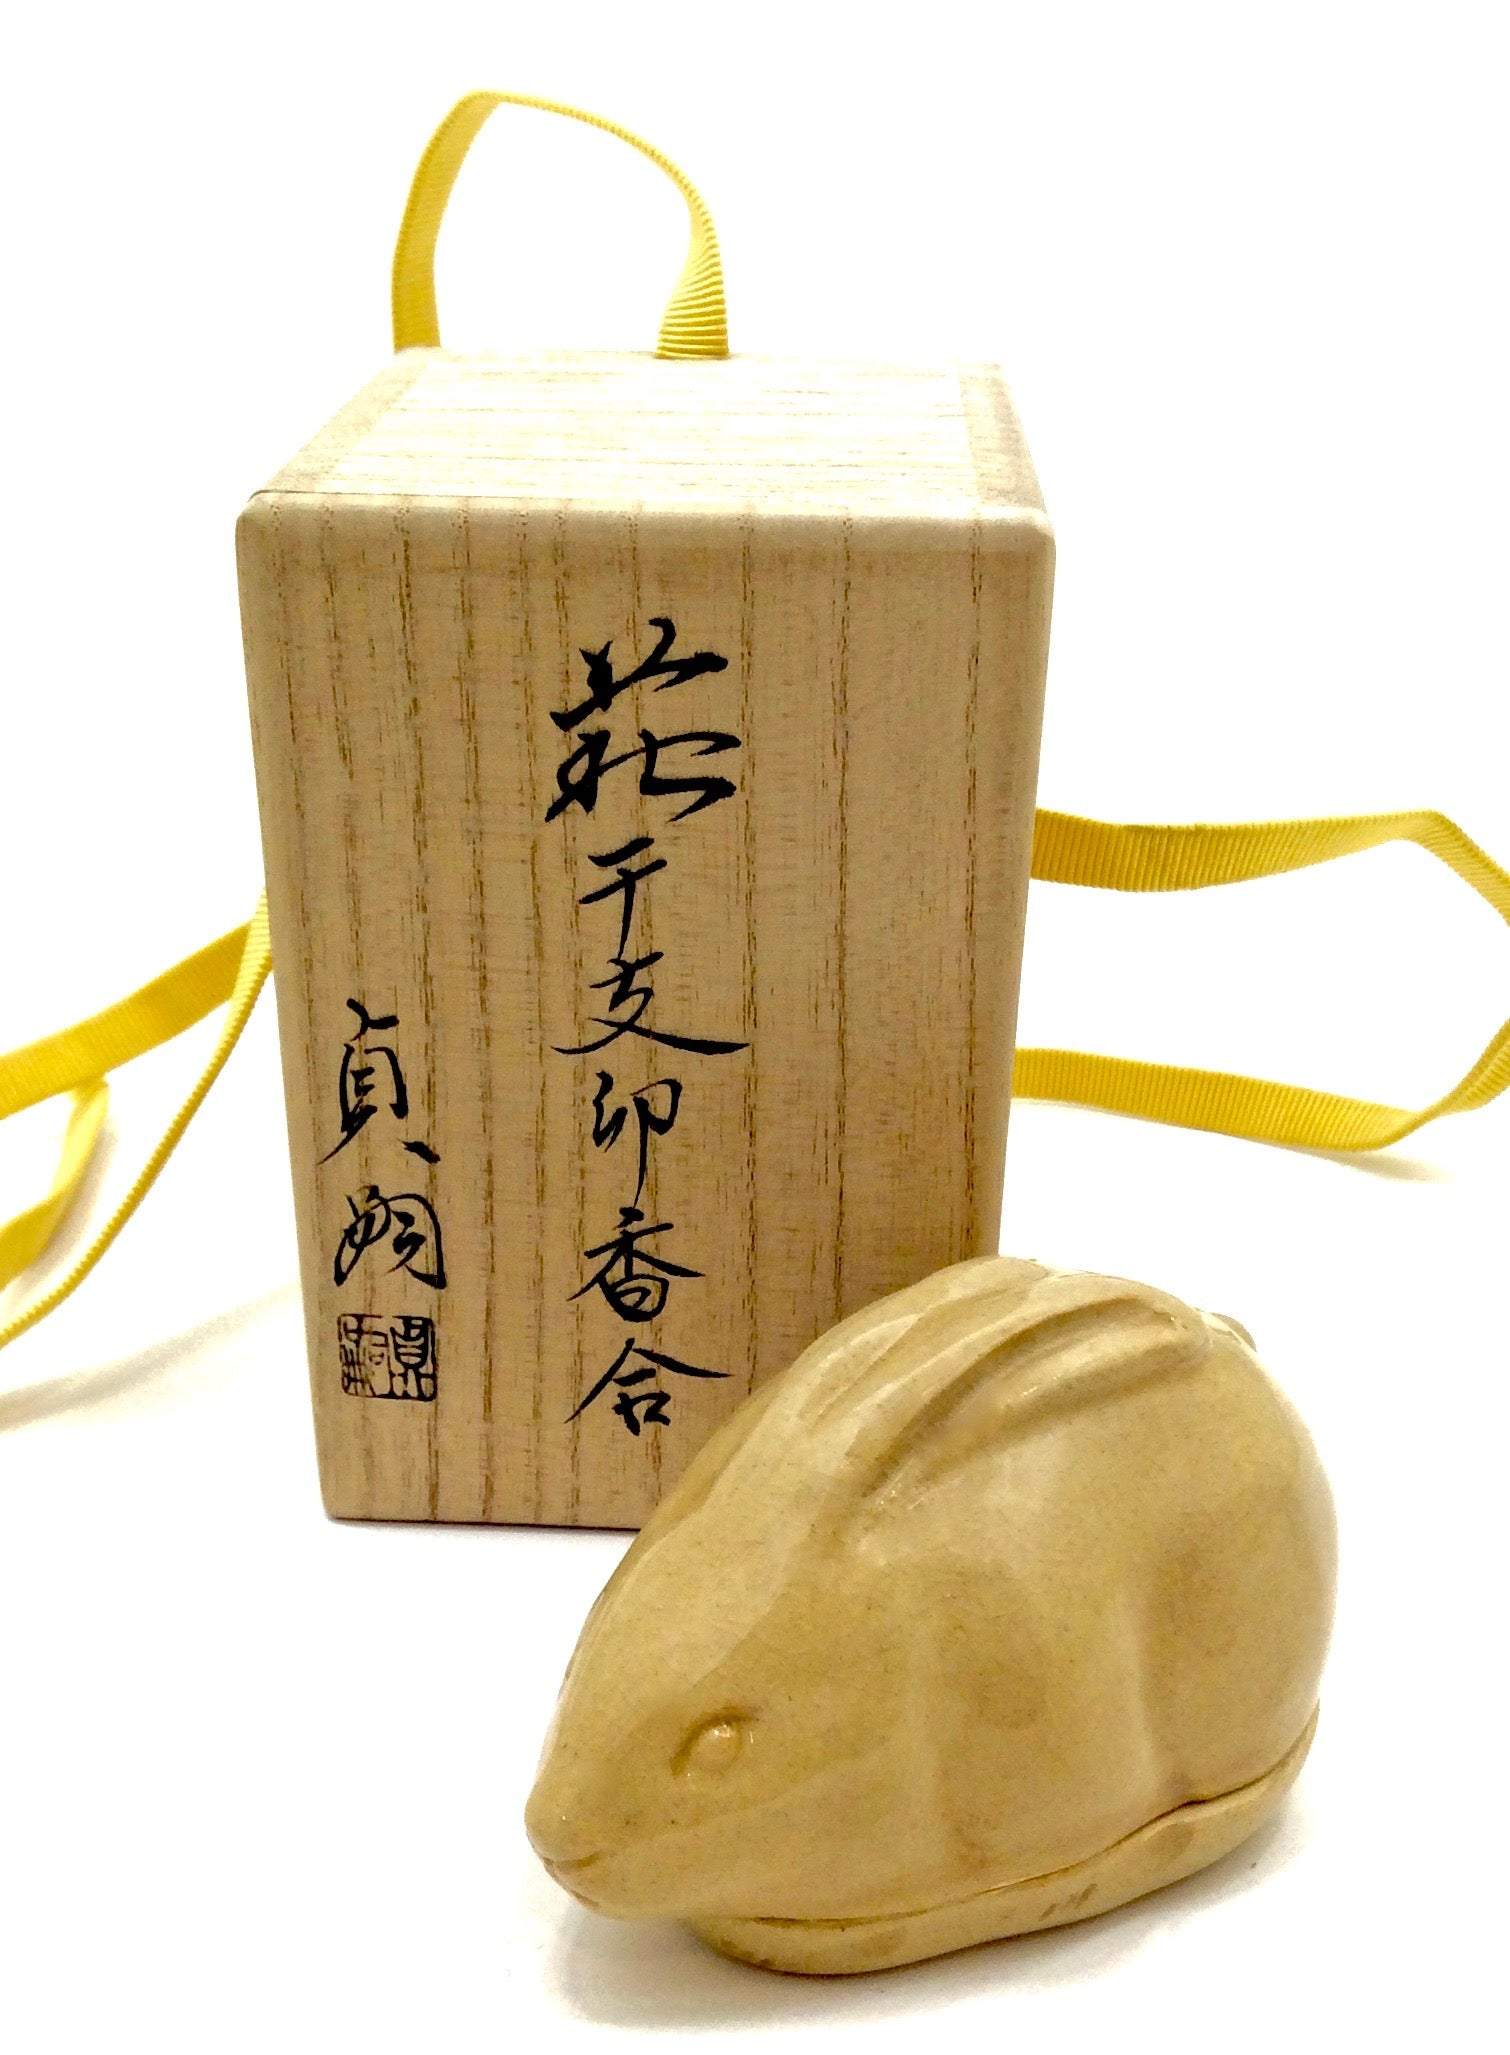 Japanese Hagiyakiya Hare Tea Ceremony Kogo | Potter Signed: Sadatsugu Shinjo XIV